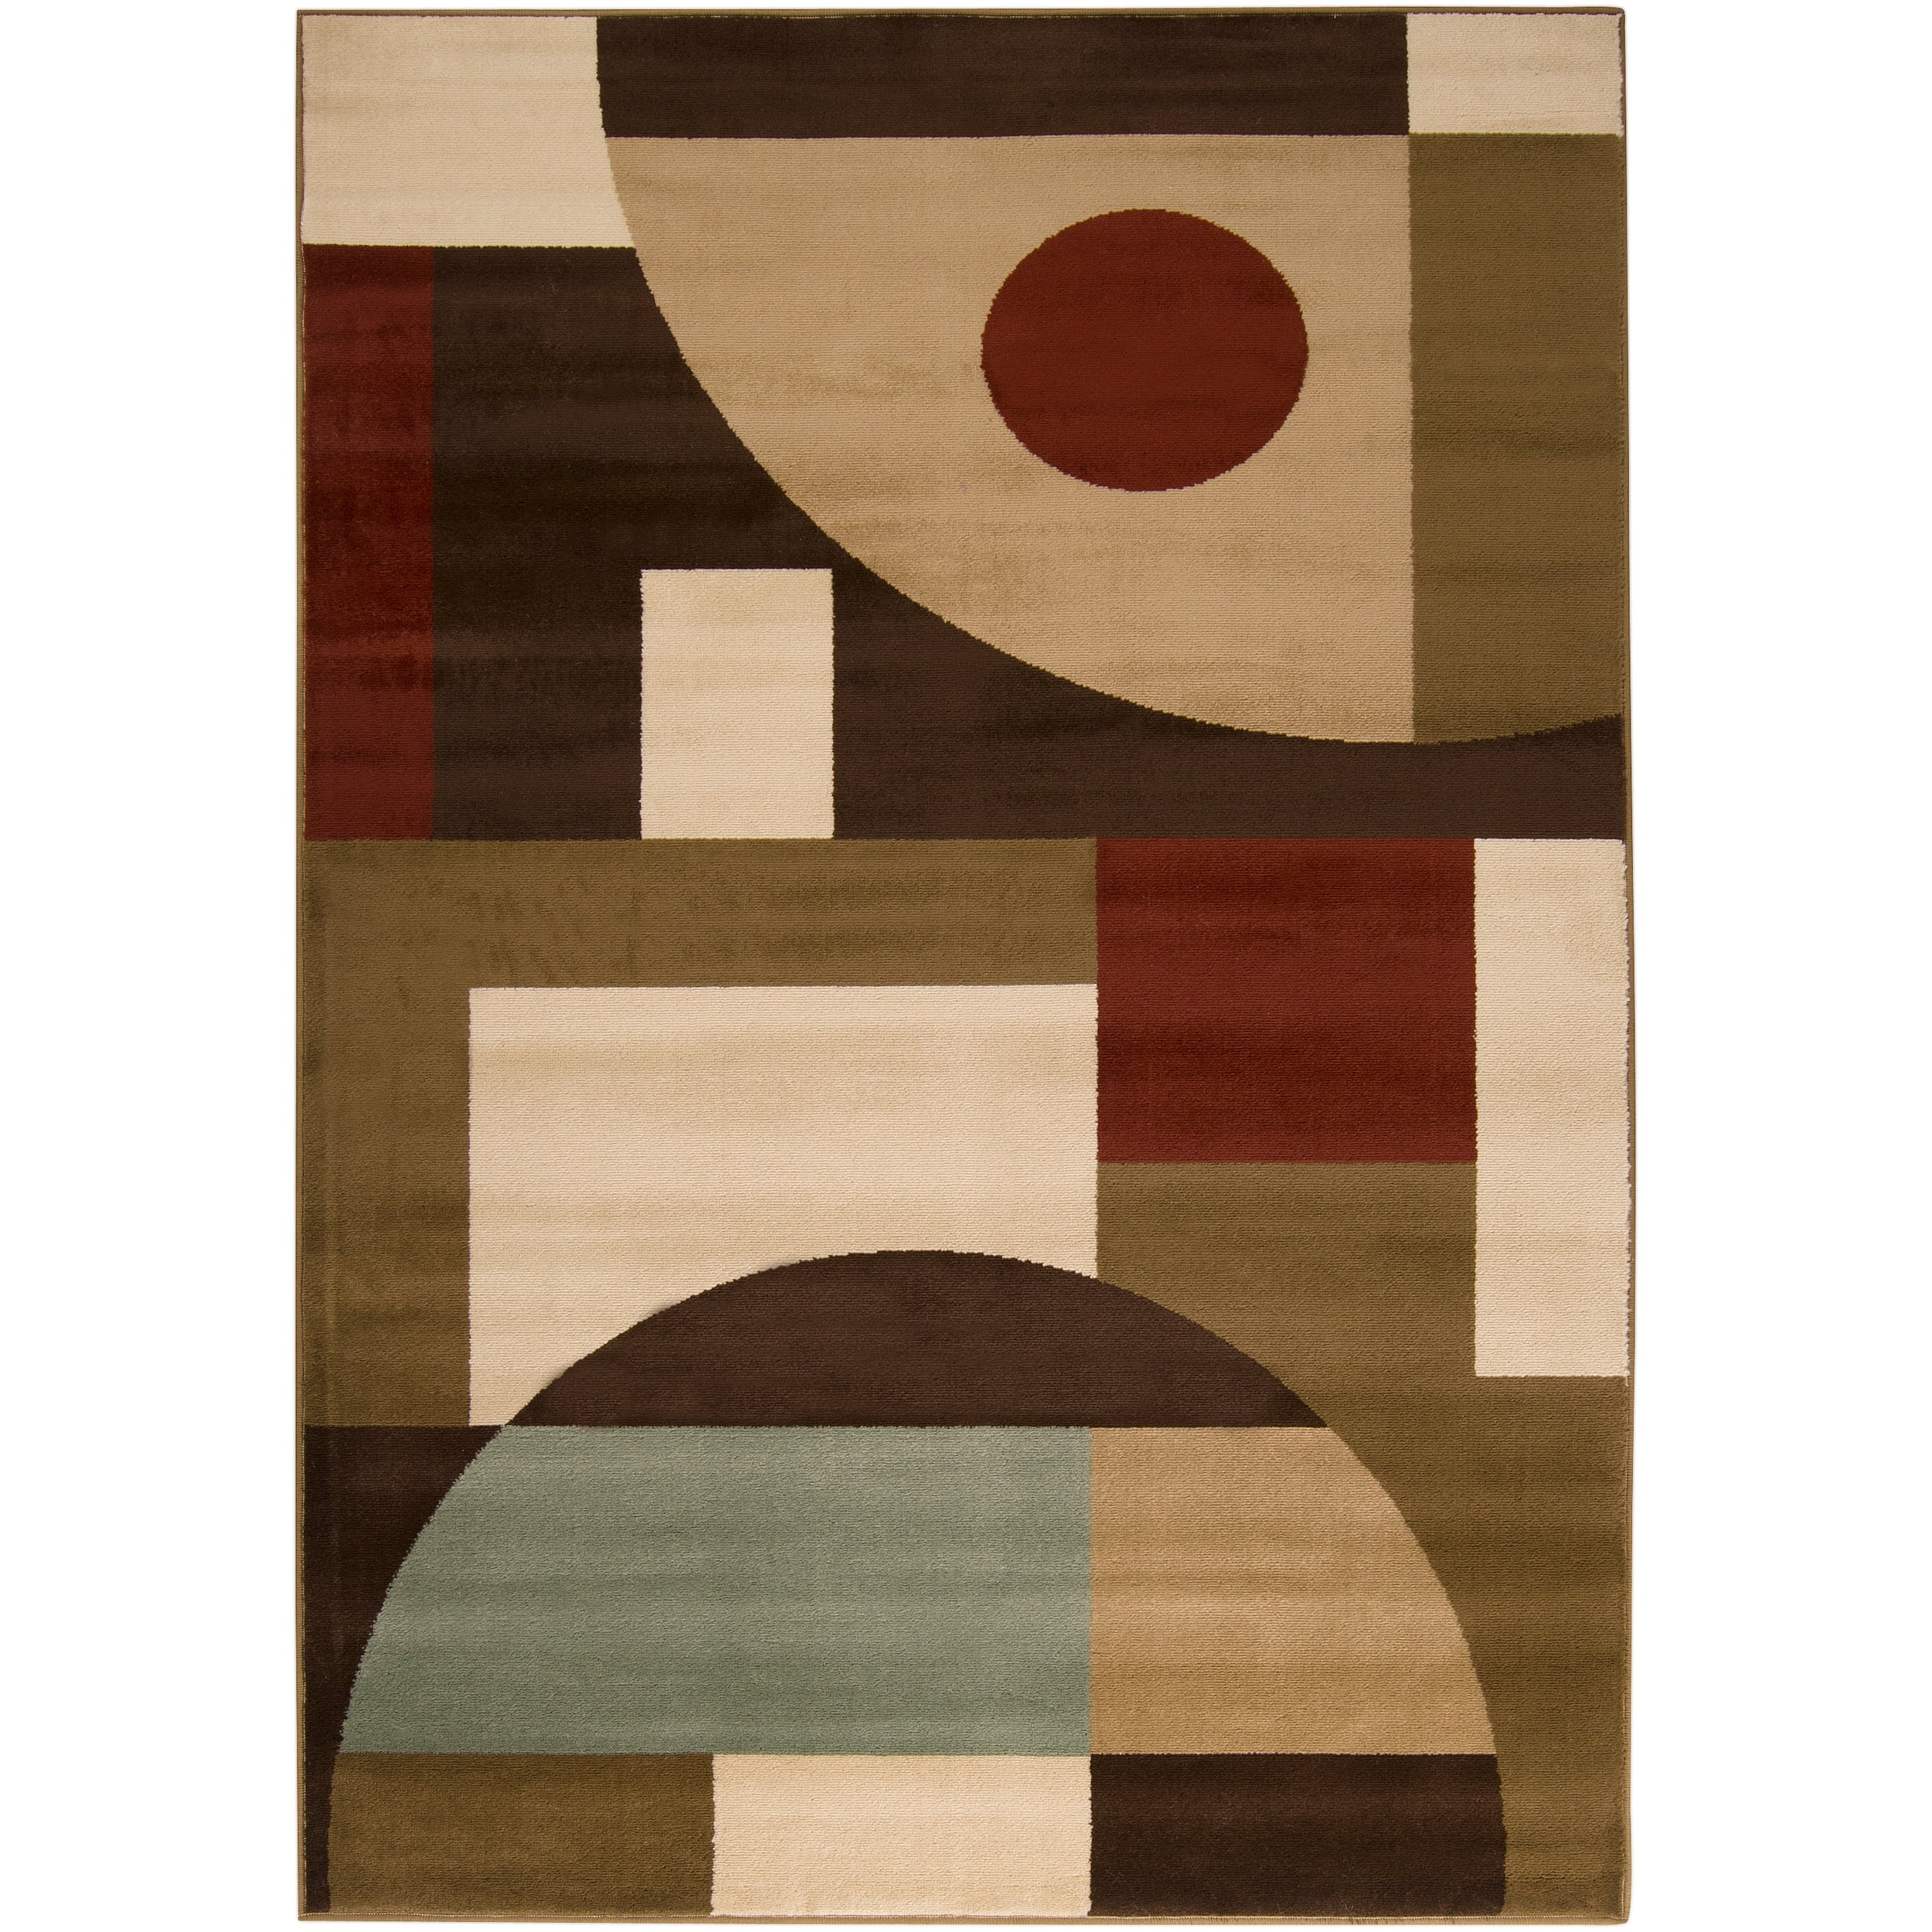 Woven Brown Stella Smith Geometric Shapes Rug (7'9 x 11'2)